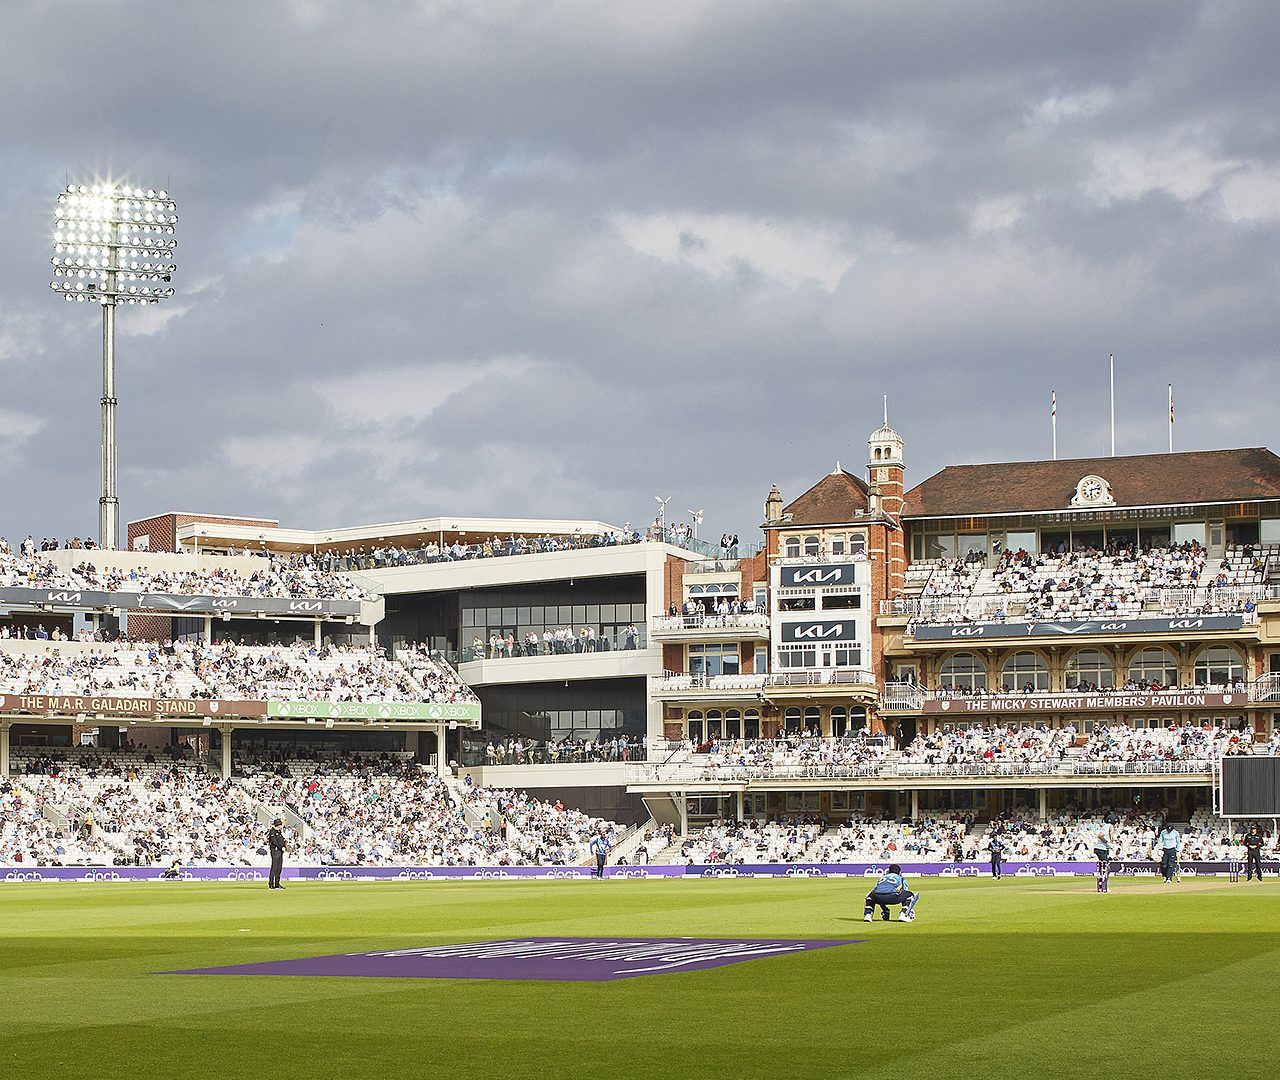 D-01-Rolfe Judd_The Oval ODT 1st July_©Hufton+Crow_001 – Crop